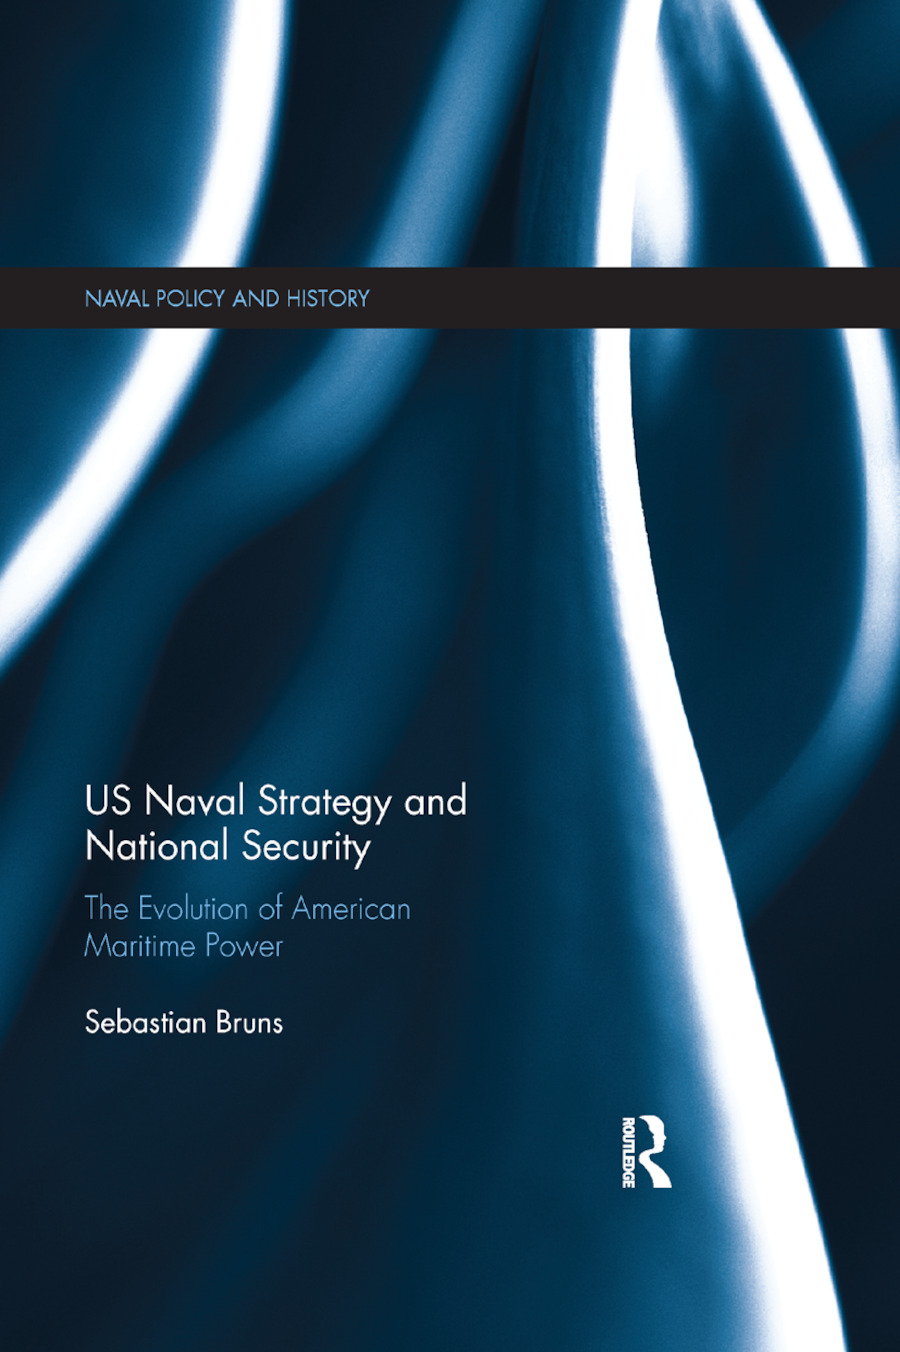 US Naval Strategy and National Security: The Evolution of American Maritime Power book cover